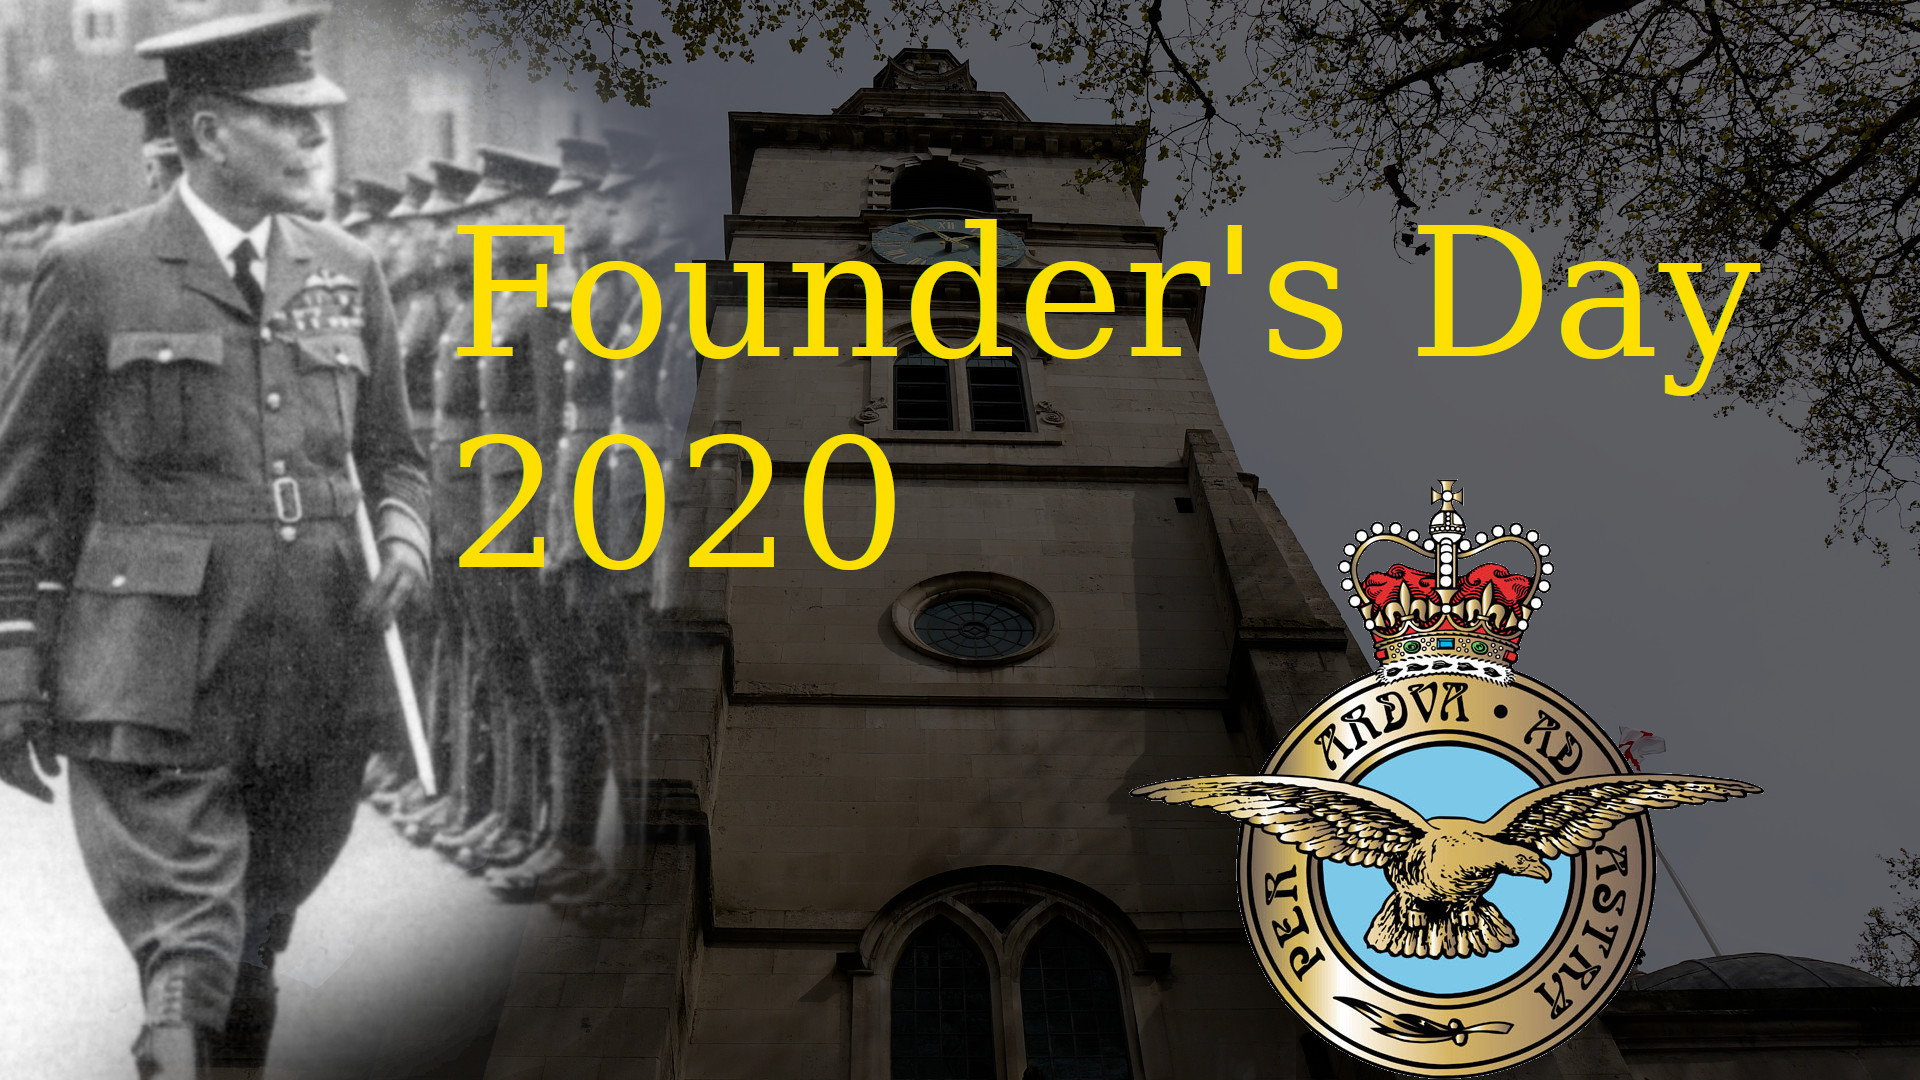 Founders Day Image